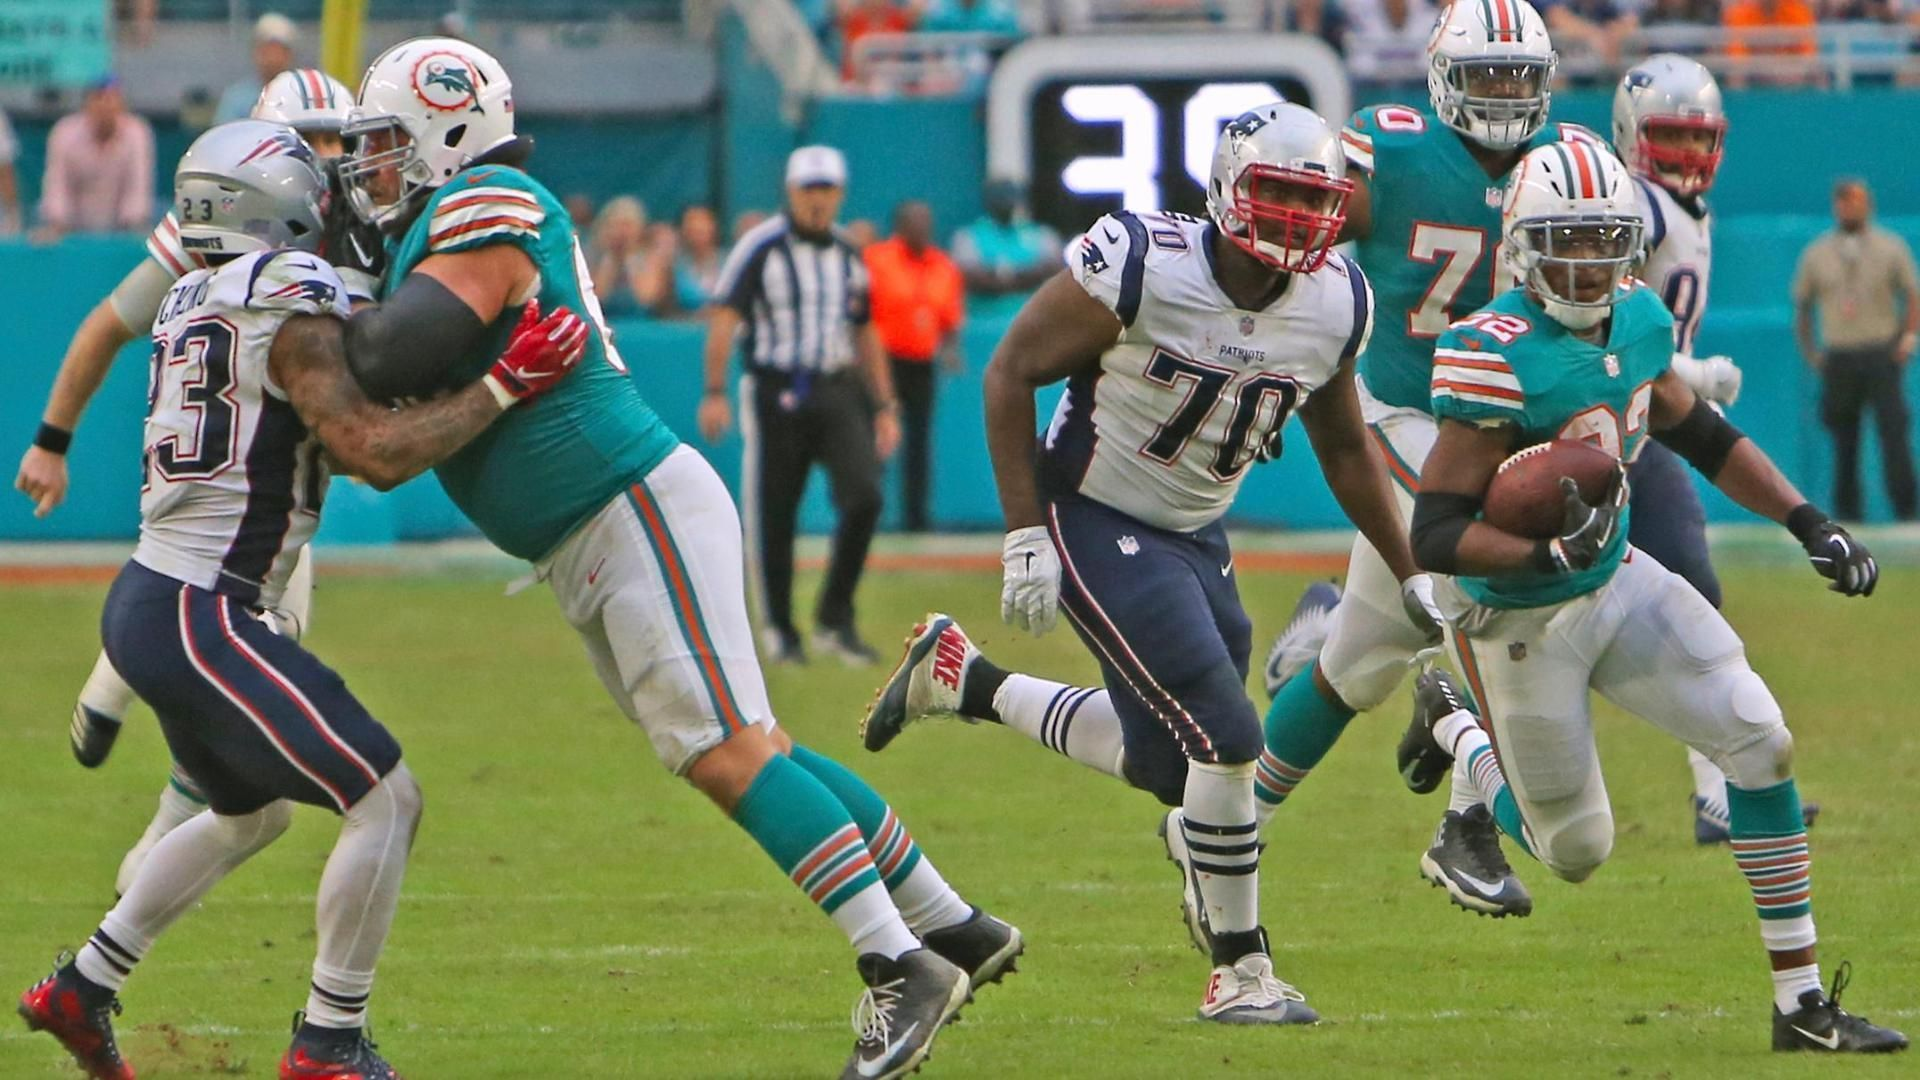 'Miami Miracle' key blocker doesn't want any attention